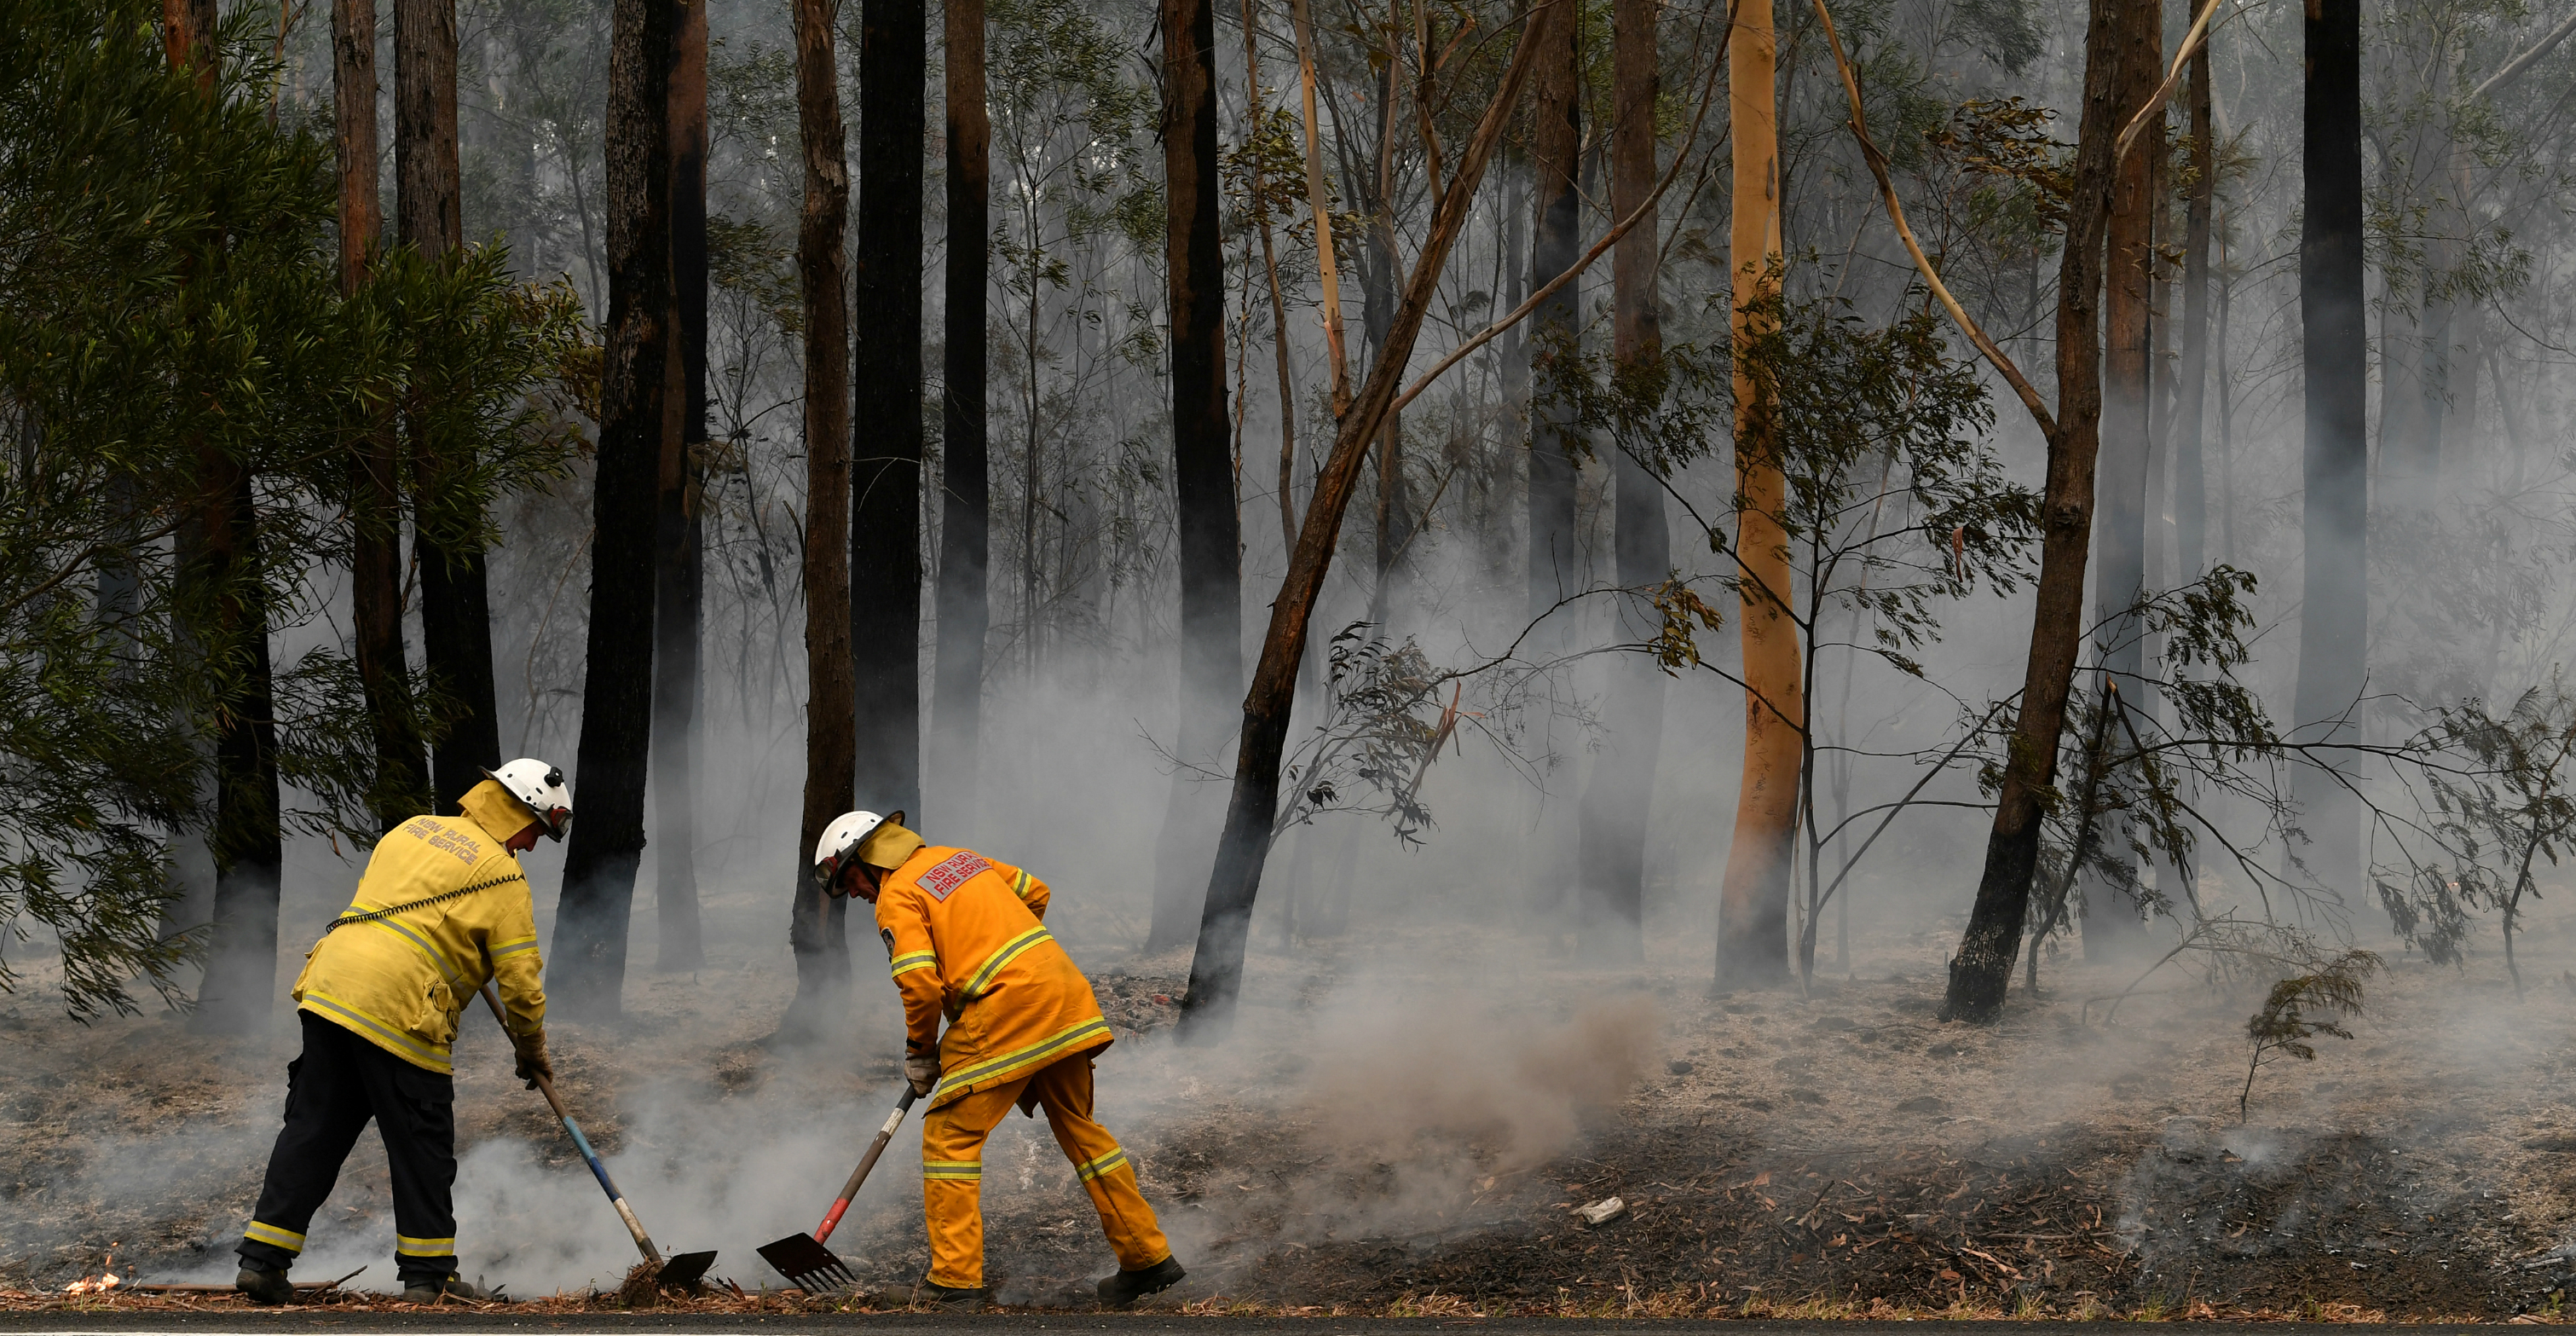 Volunteers try to contain a bushfire which closed Princes Highway south of Ulladulla, Australia, on Jan. 5. Photo: AAP Image via Reuters